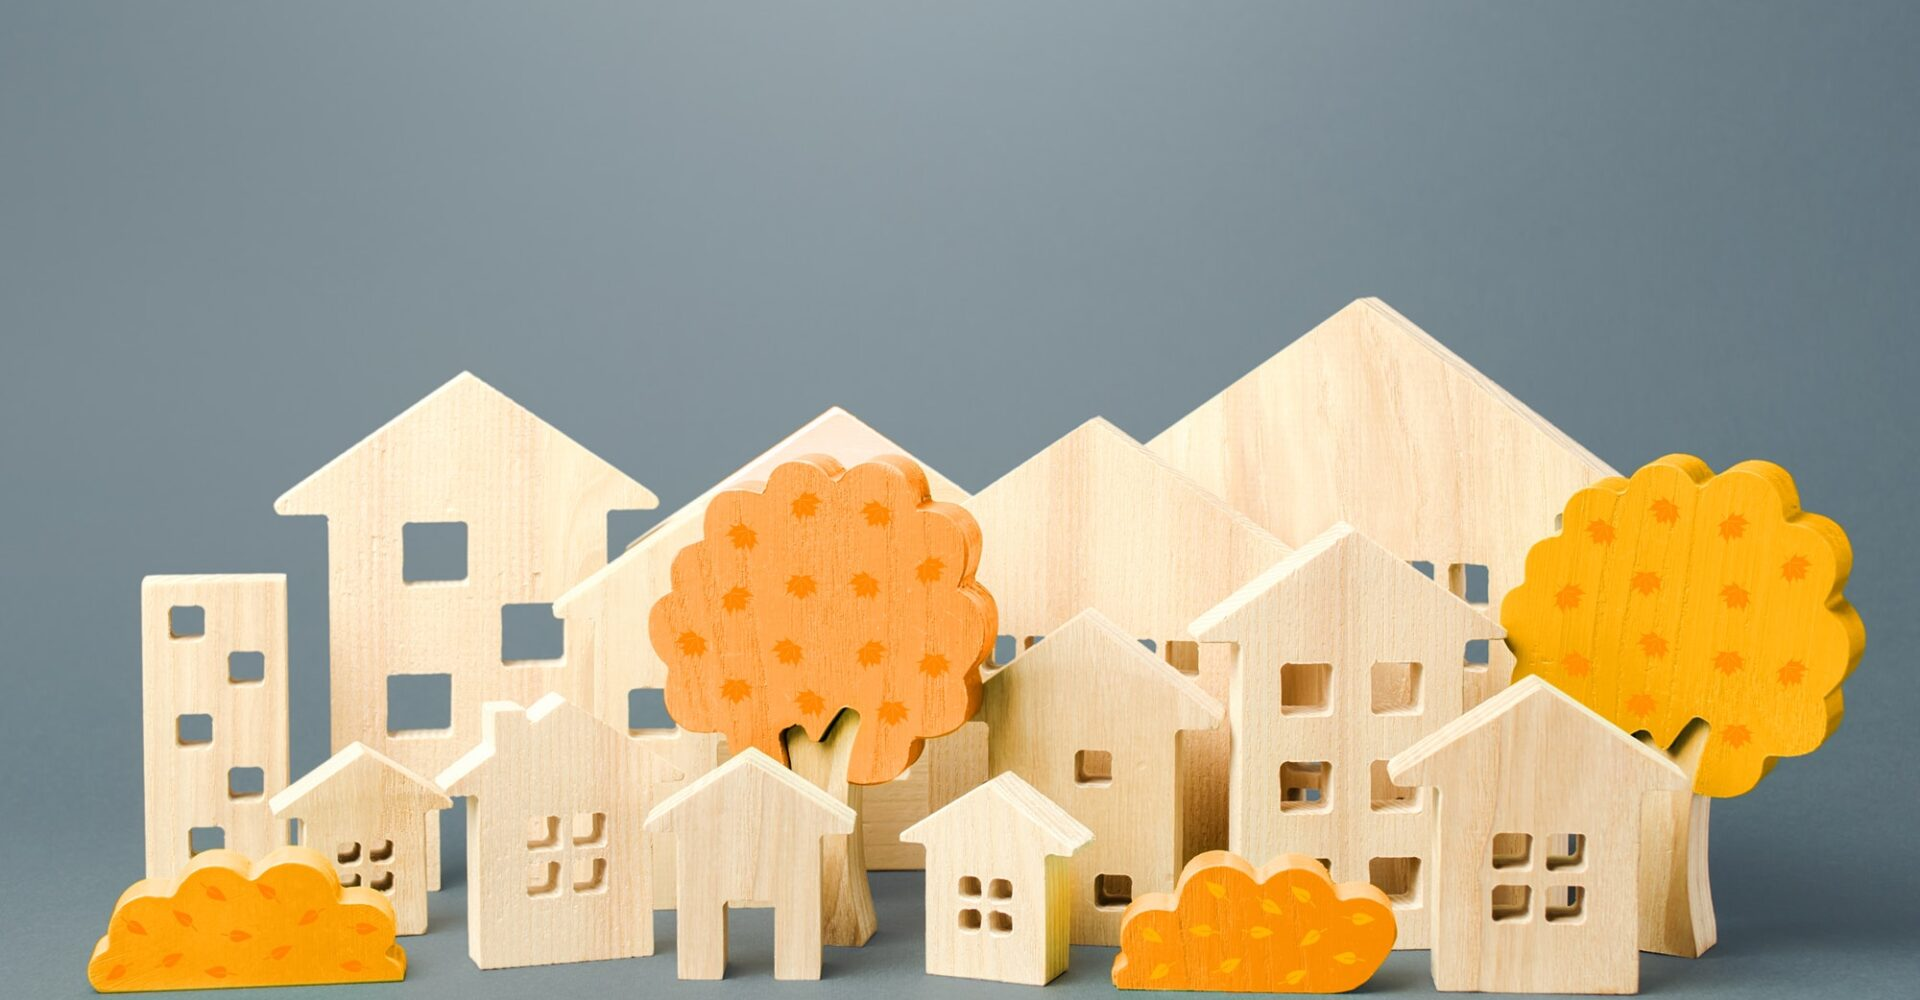 City of figures houses and autumn yellow trees. Real estate concept. Urbanism and infrastructure. Re